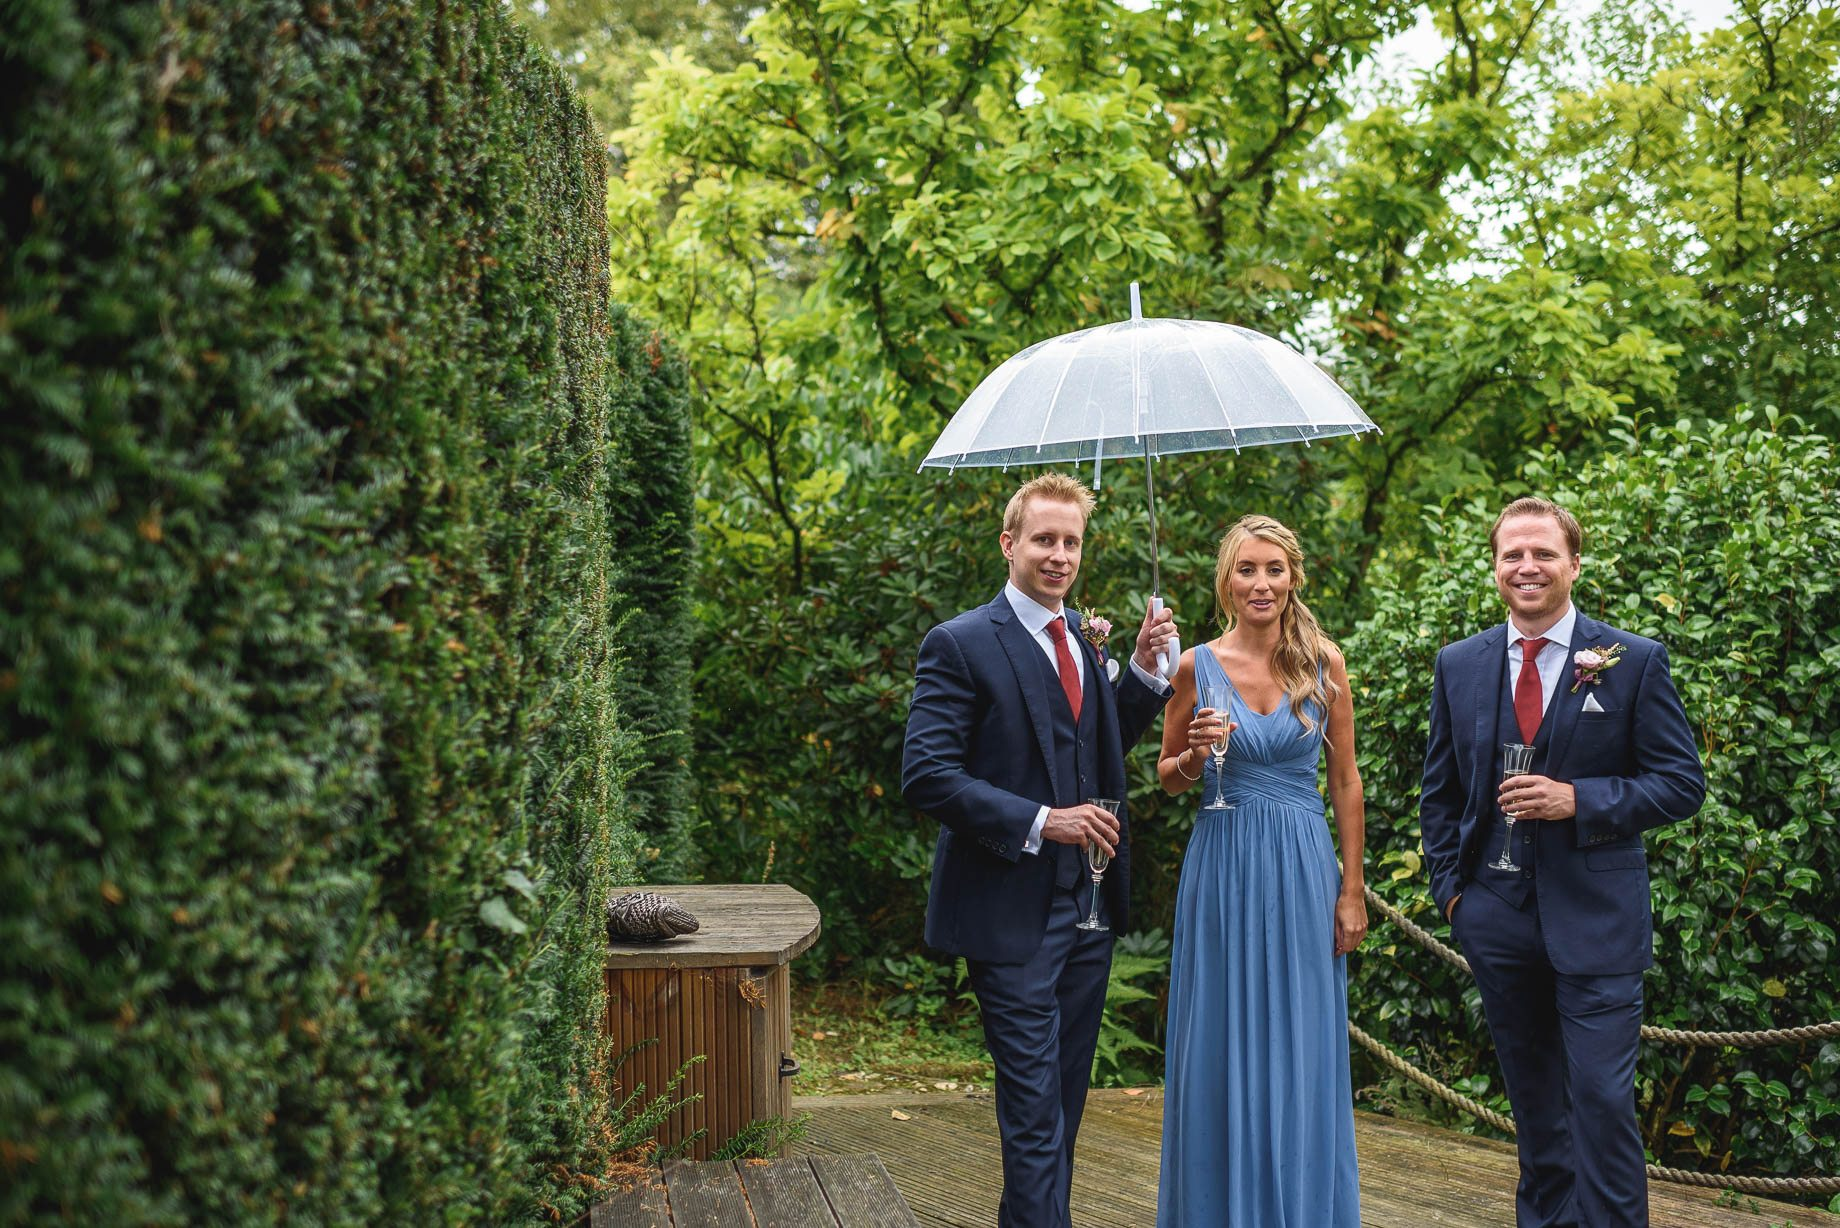 surrey-wedding-photography-guy-collier-photography-claire-and-tom-158-of-227